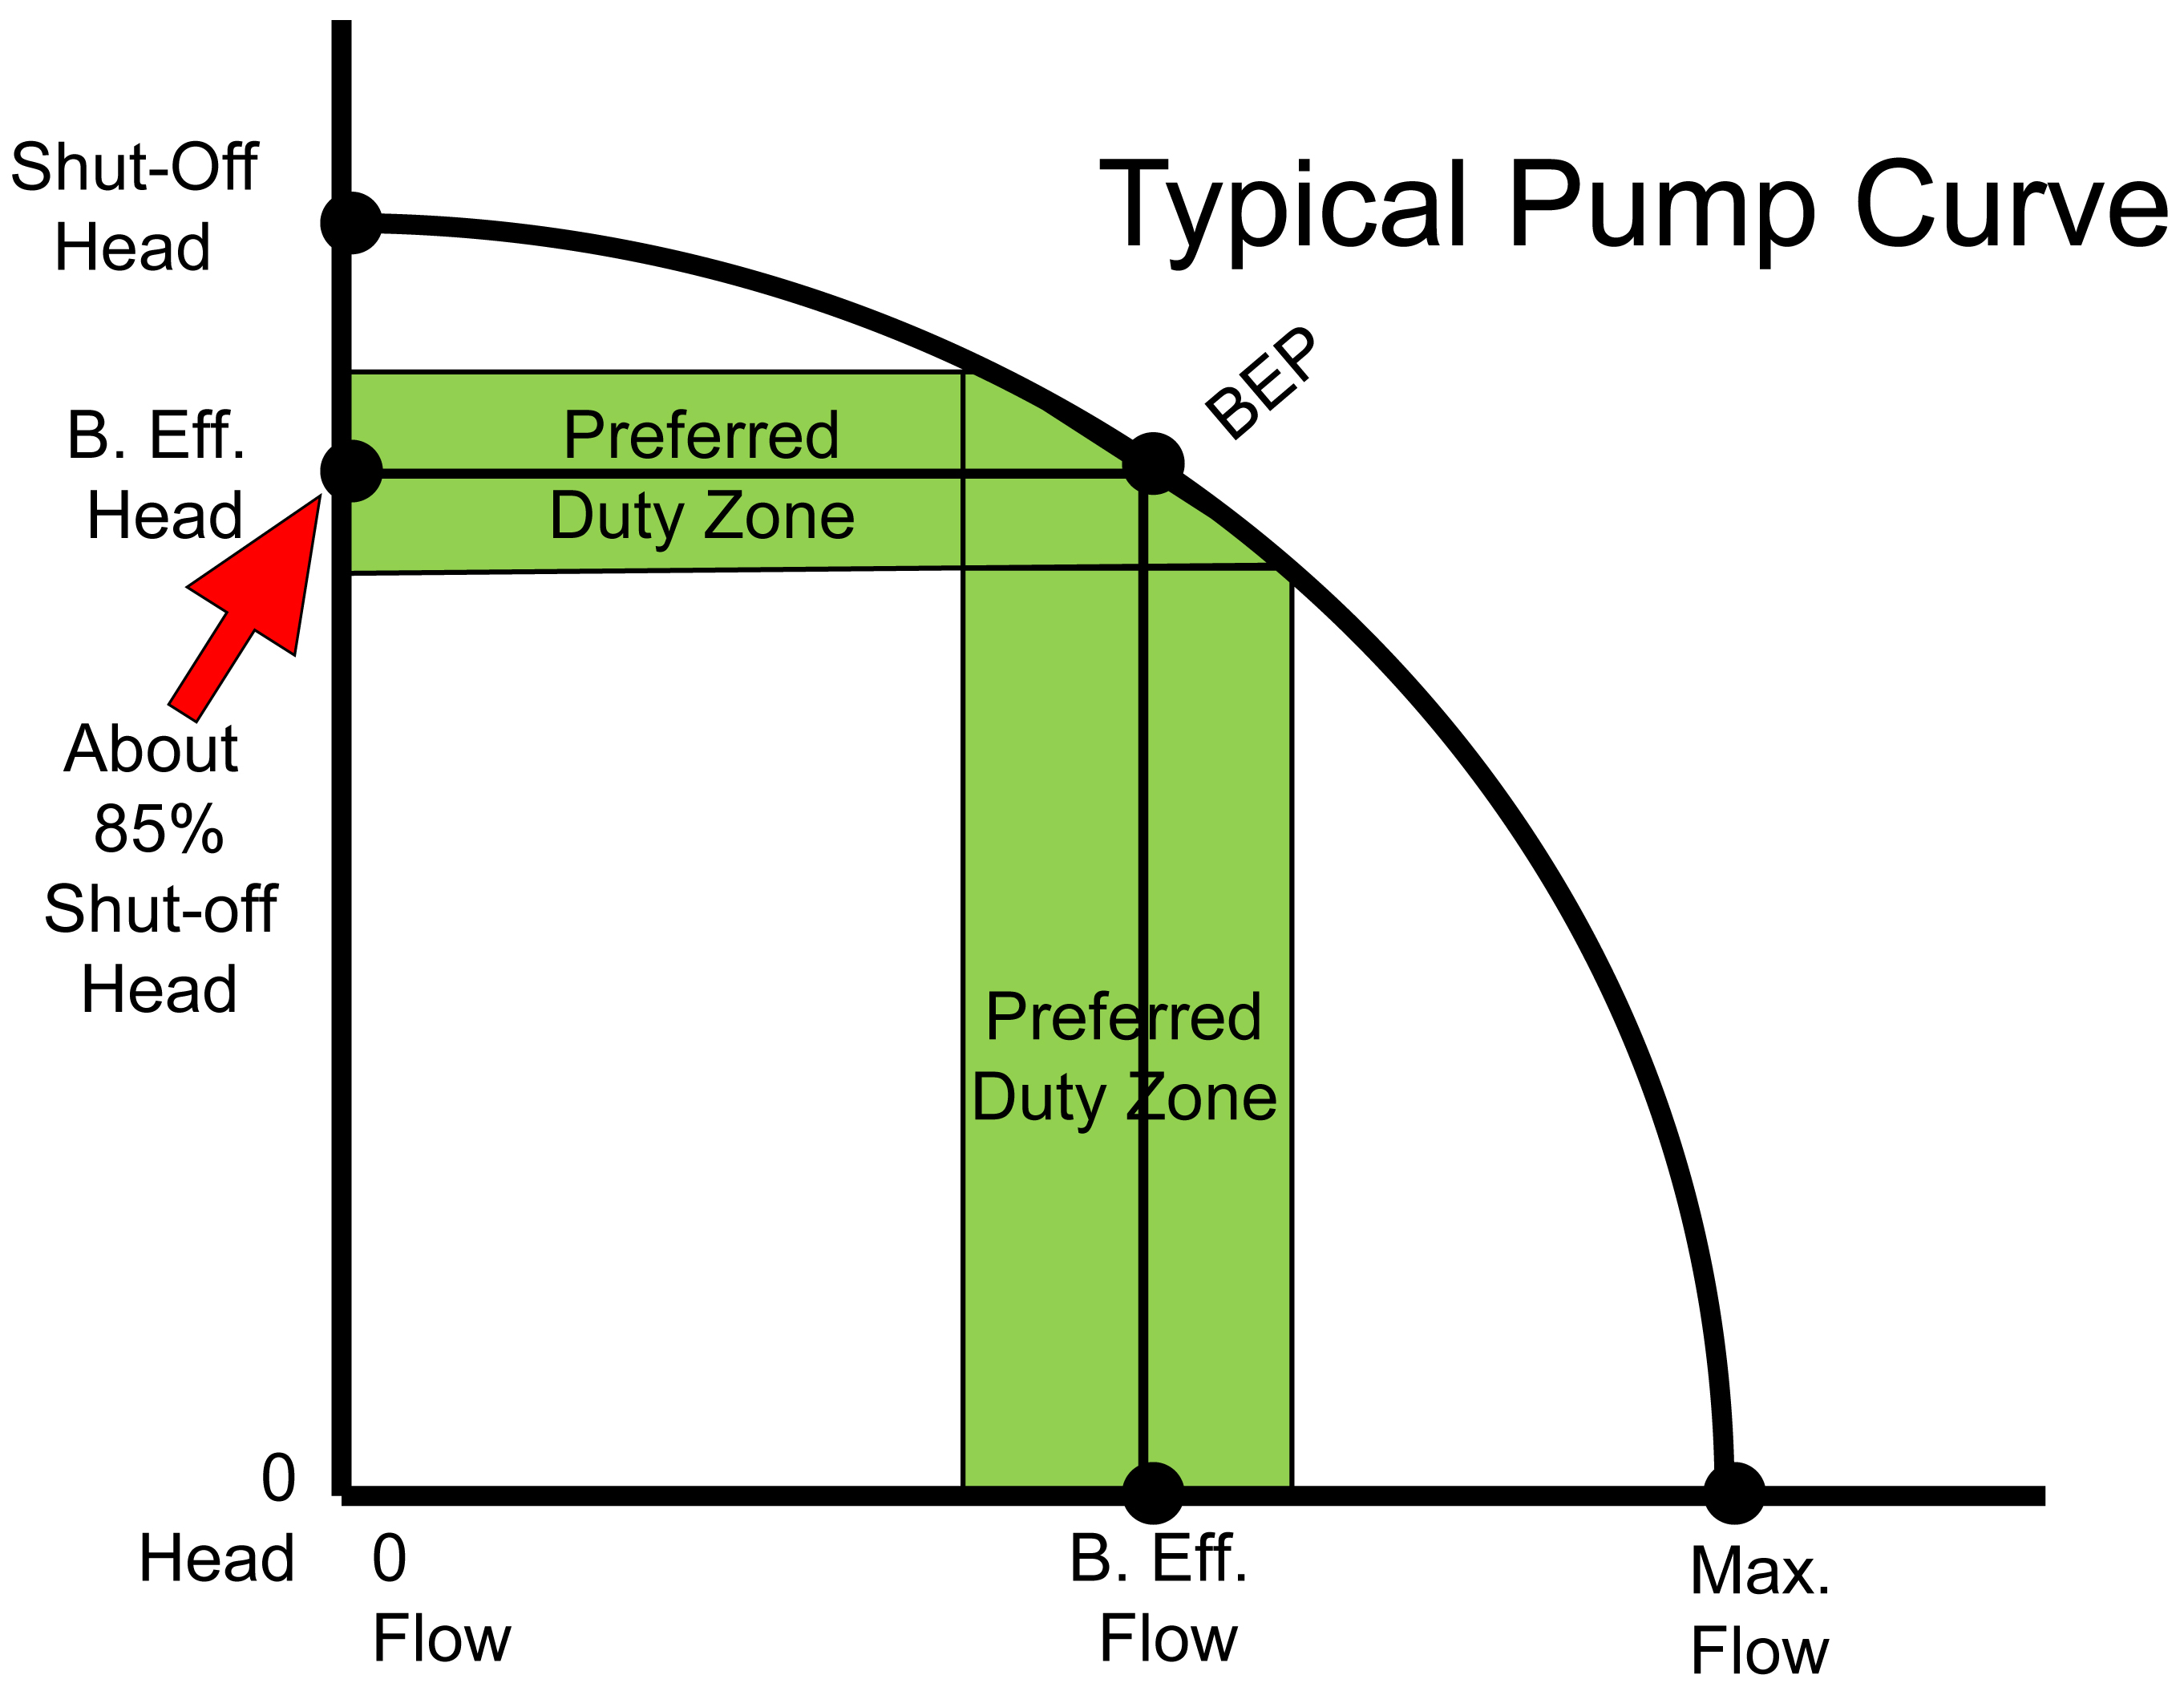 Axial Flow Goulds Pump Curves : Pump guy article september issue assumed